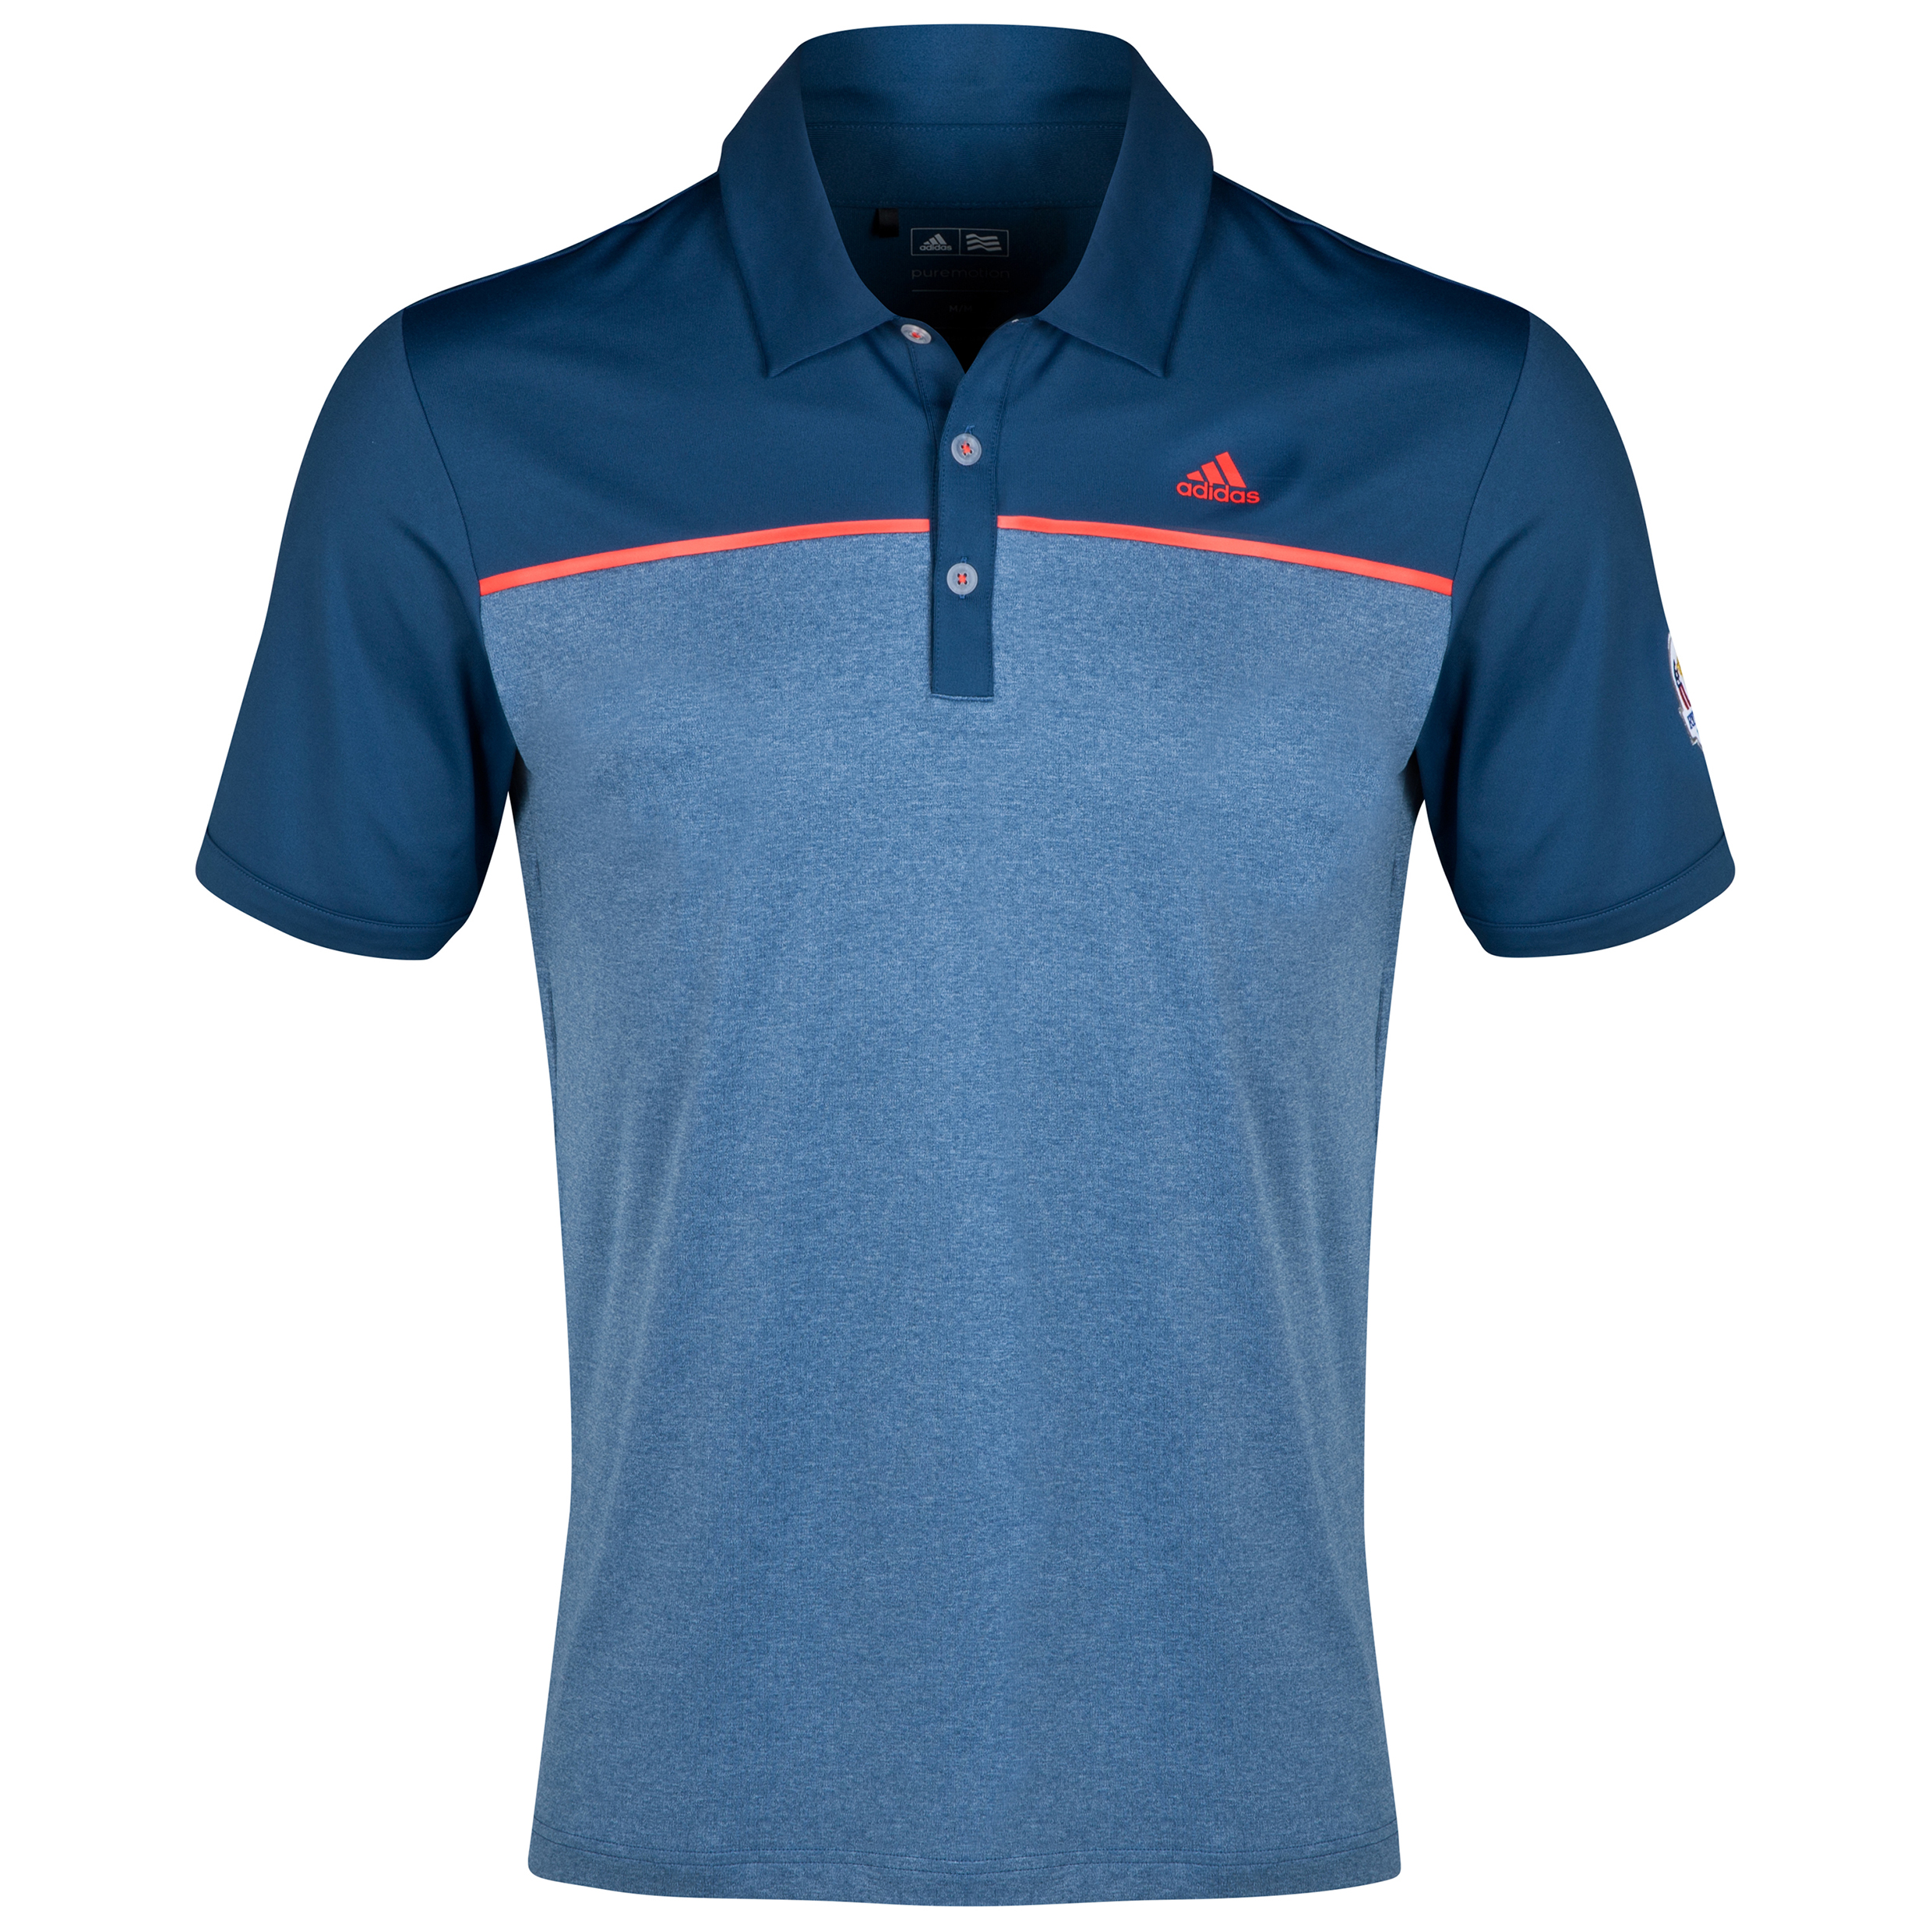 The 2014 Ryder Cup adidas ClimaLite Heather Block Polo Navy